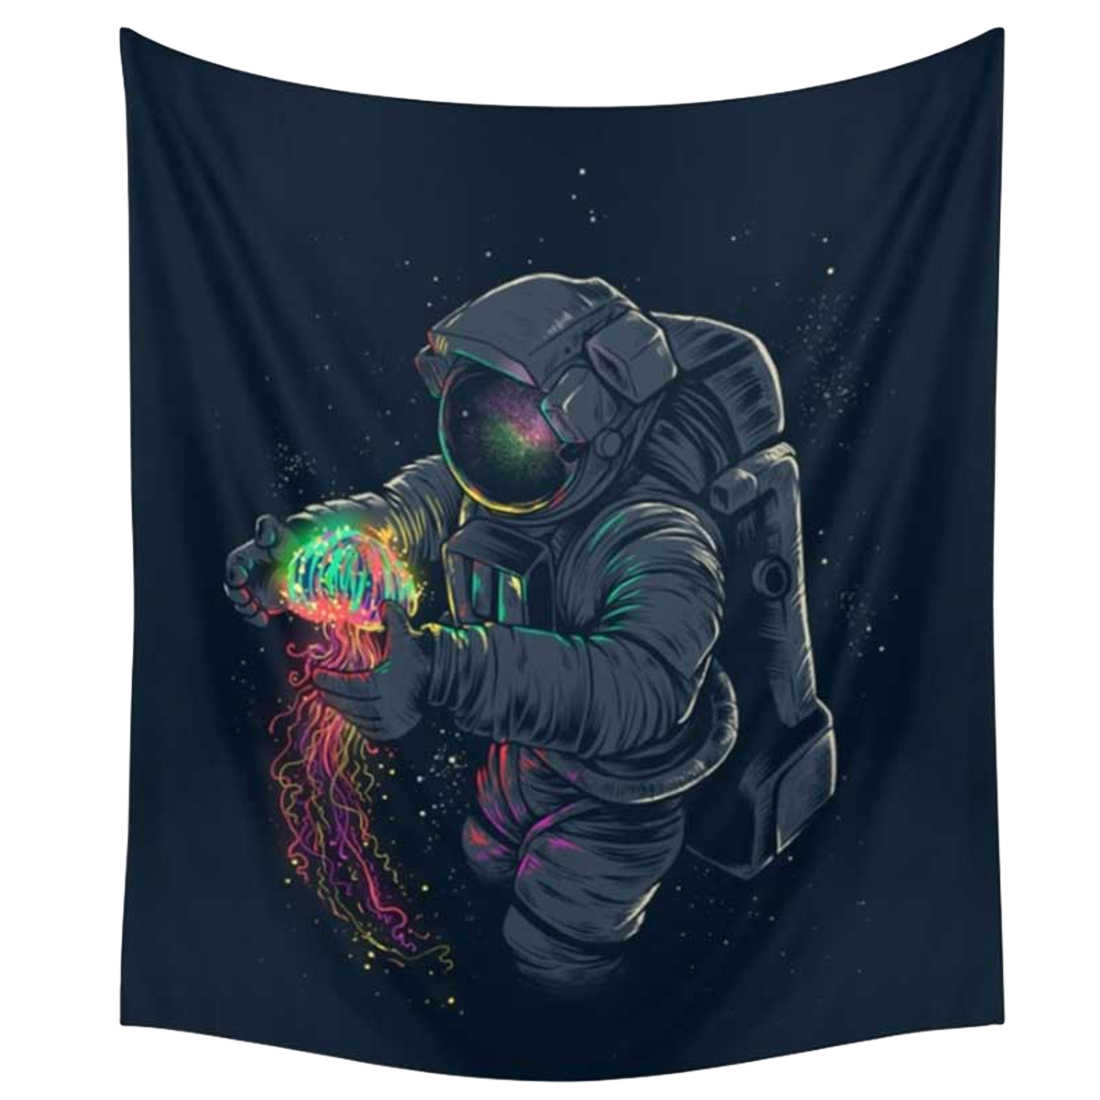 Astronauts Tapestries Colorful Psychedelic Bohemian Mandala Tapestry Camping Tent Travel Sandy Beach Picnic Throw Rug Blanket